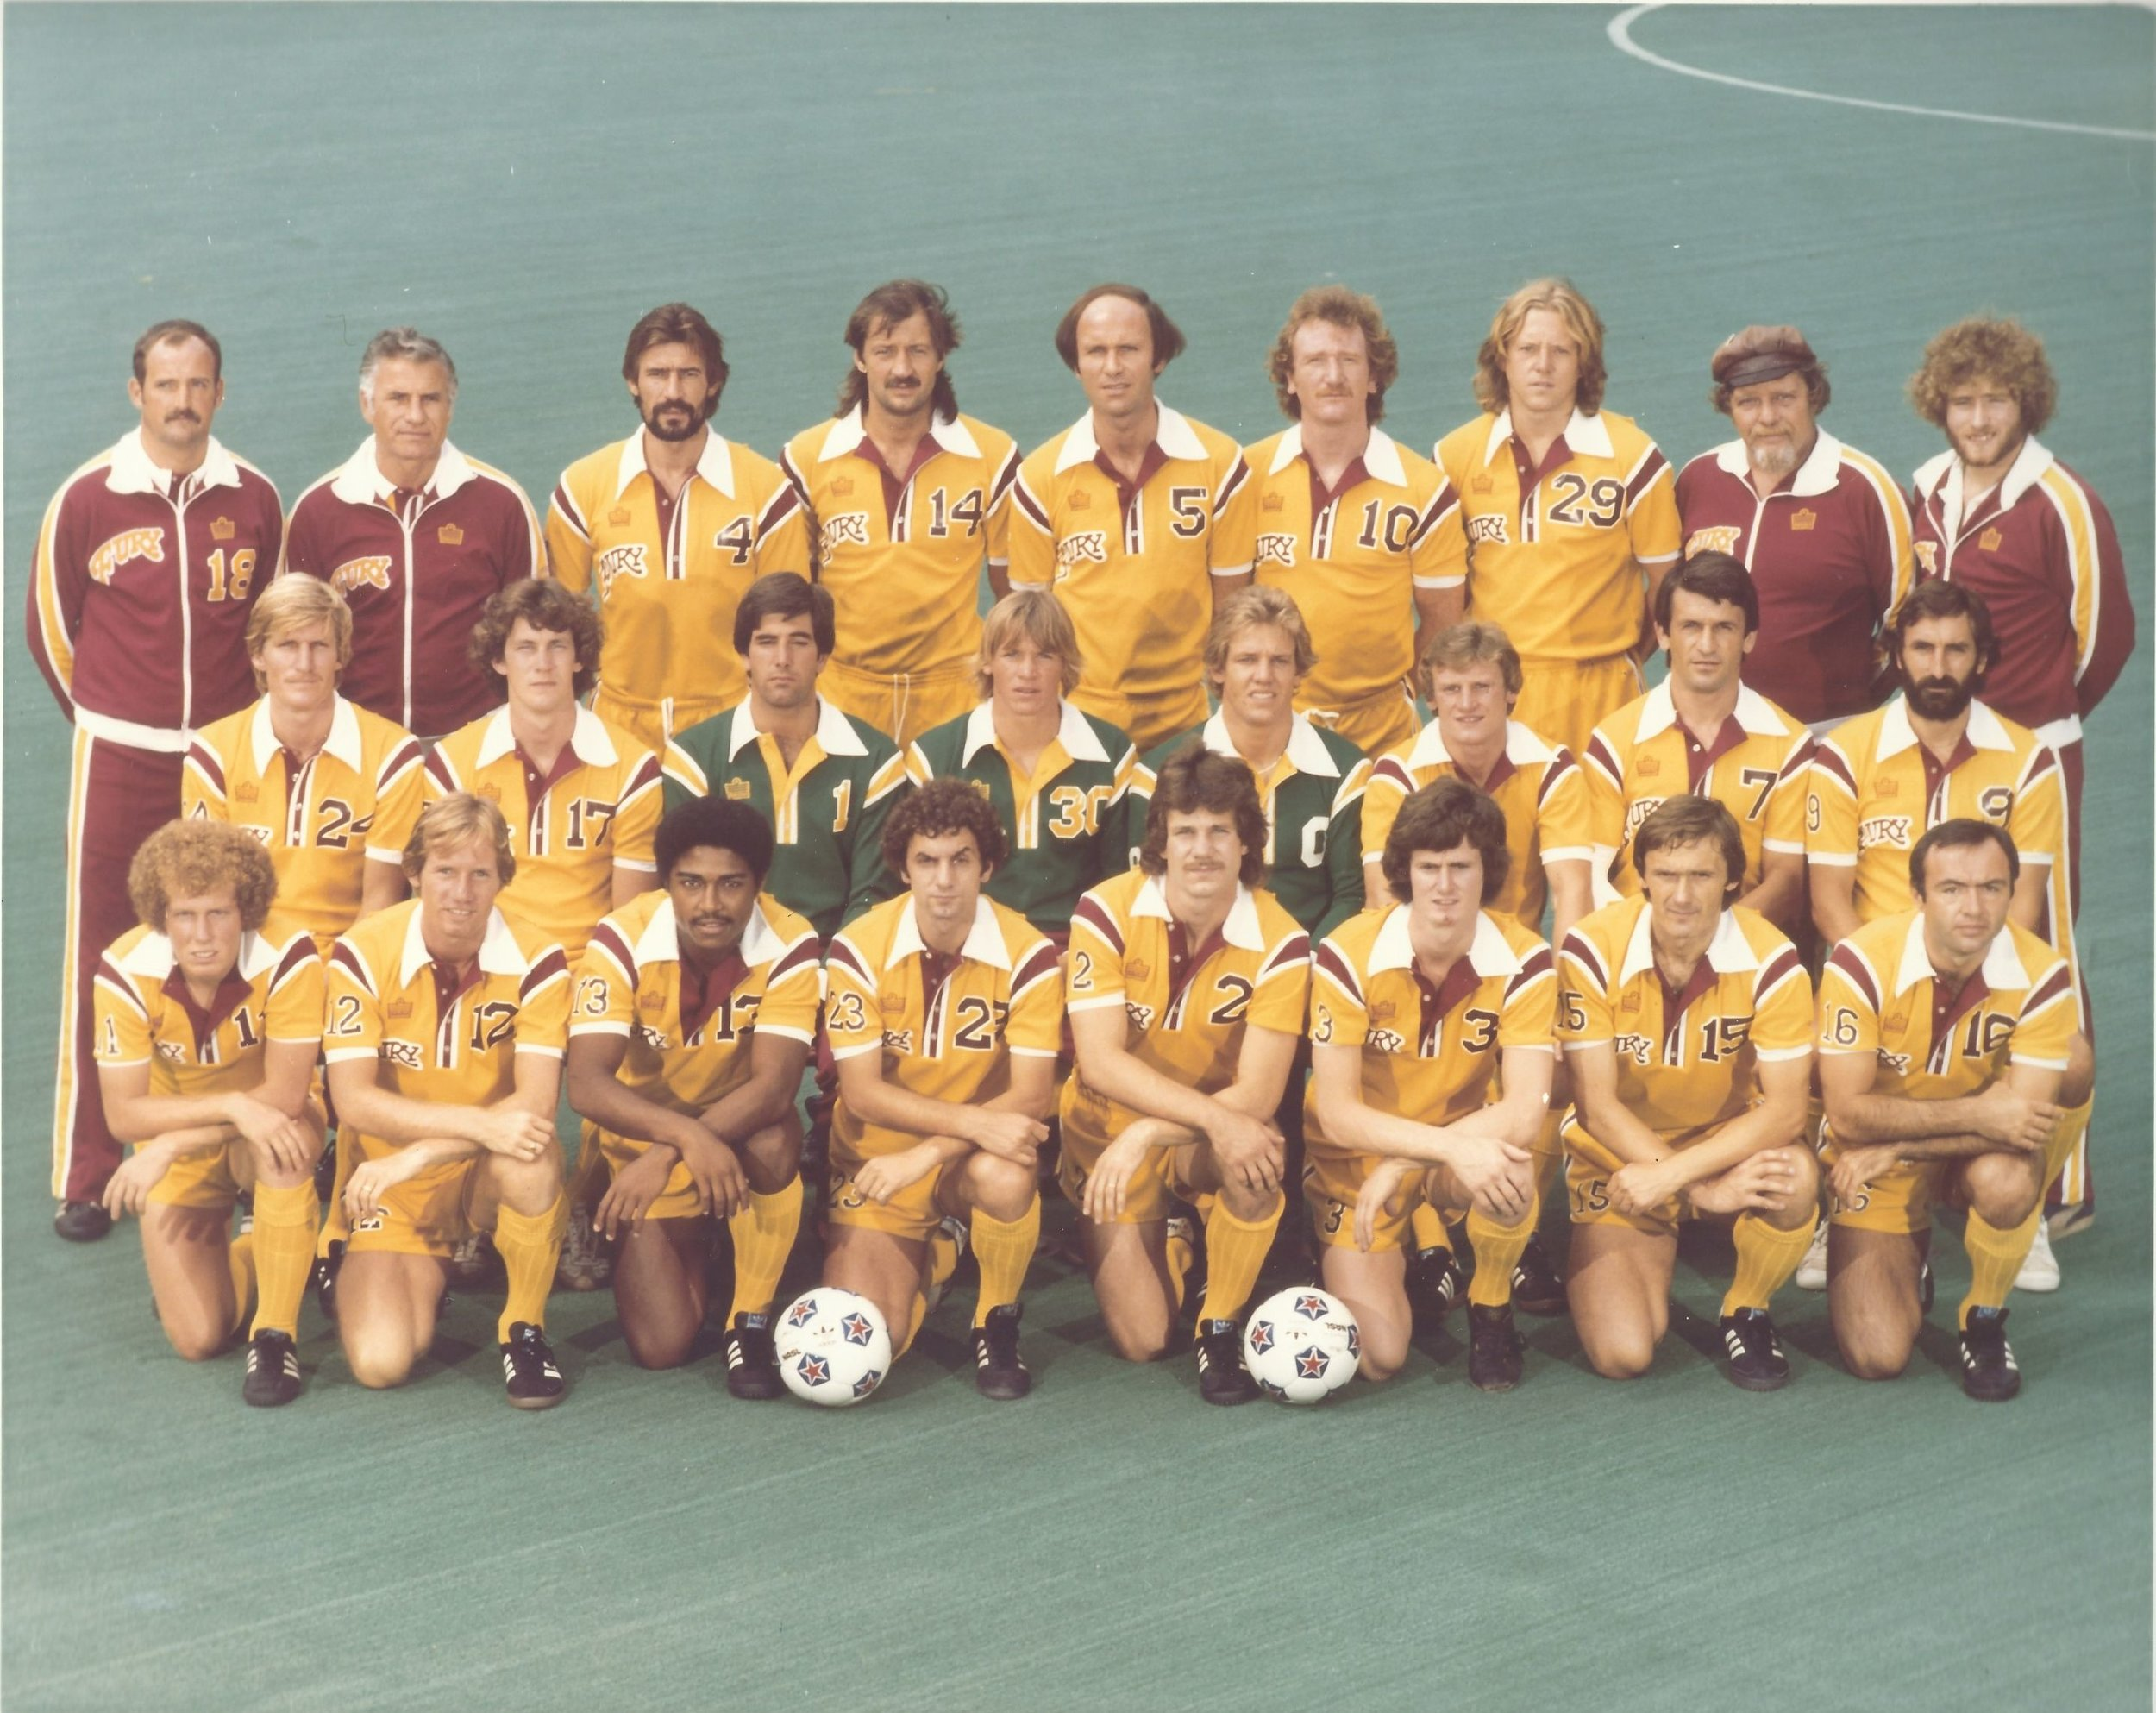 1979 Phila Fury Team Picture.jpg